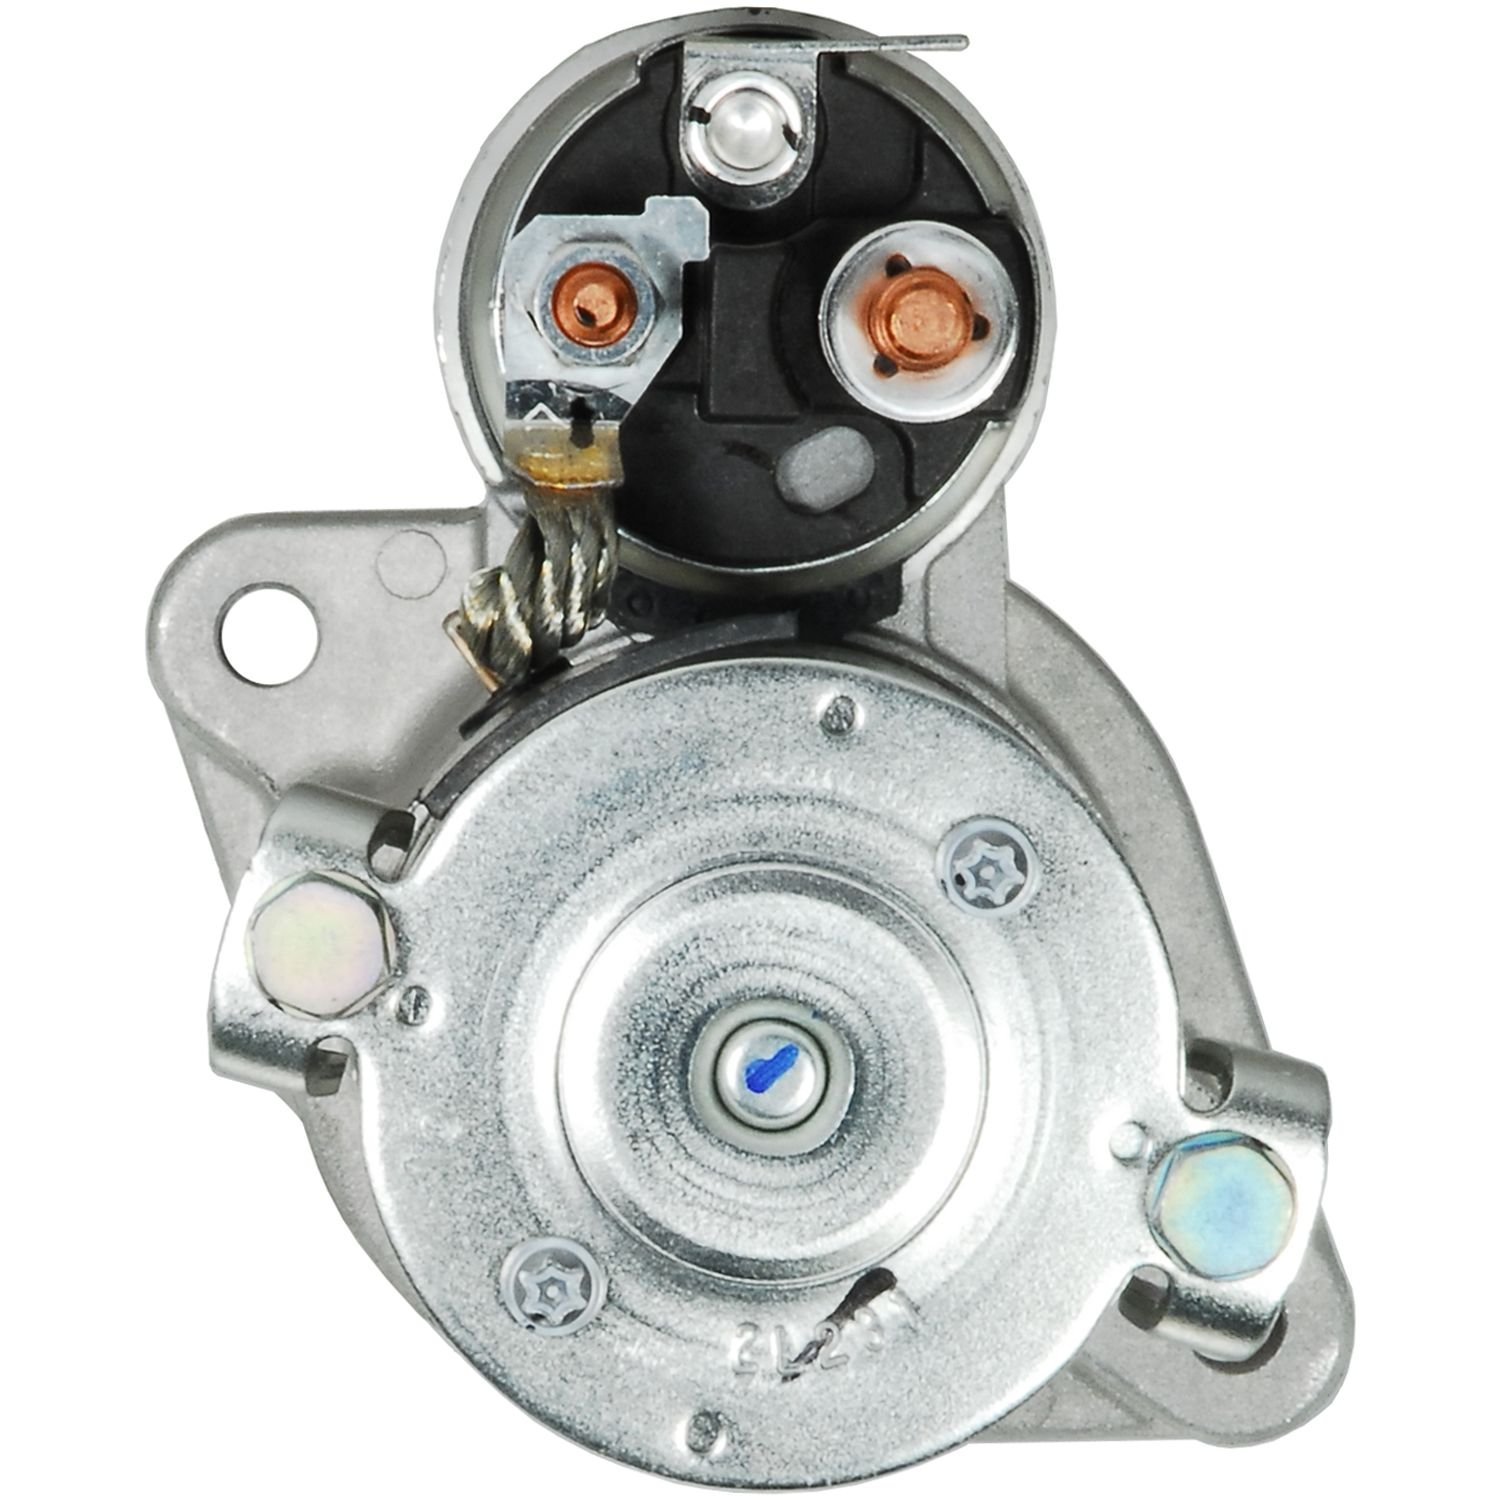 ACDelco 337-1202 Professional Starter